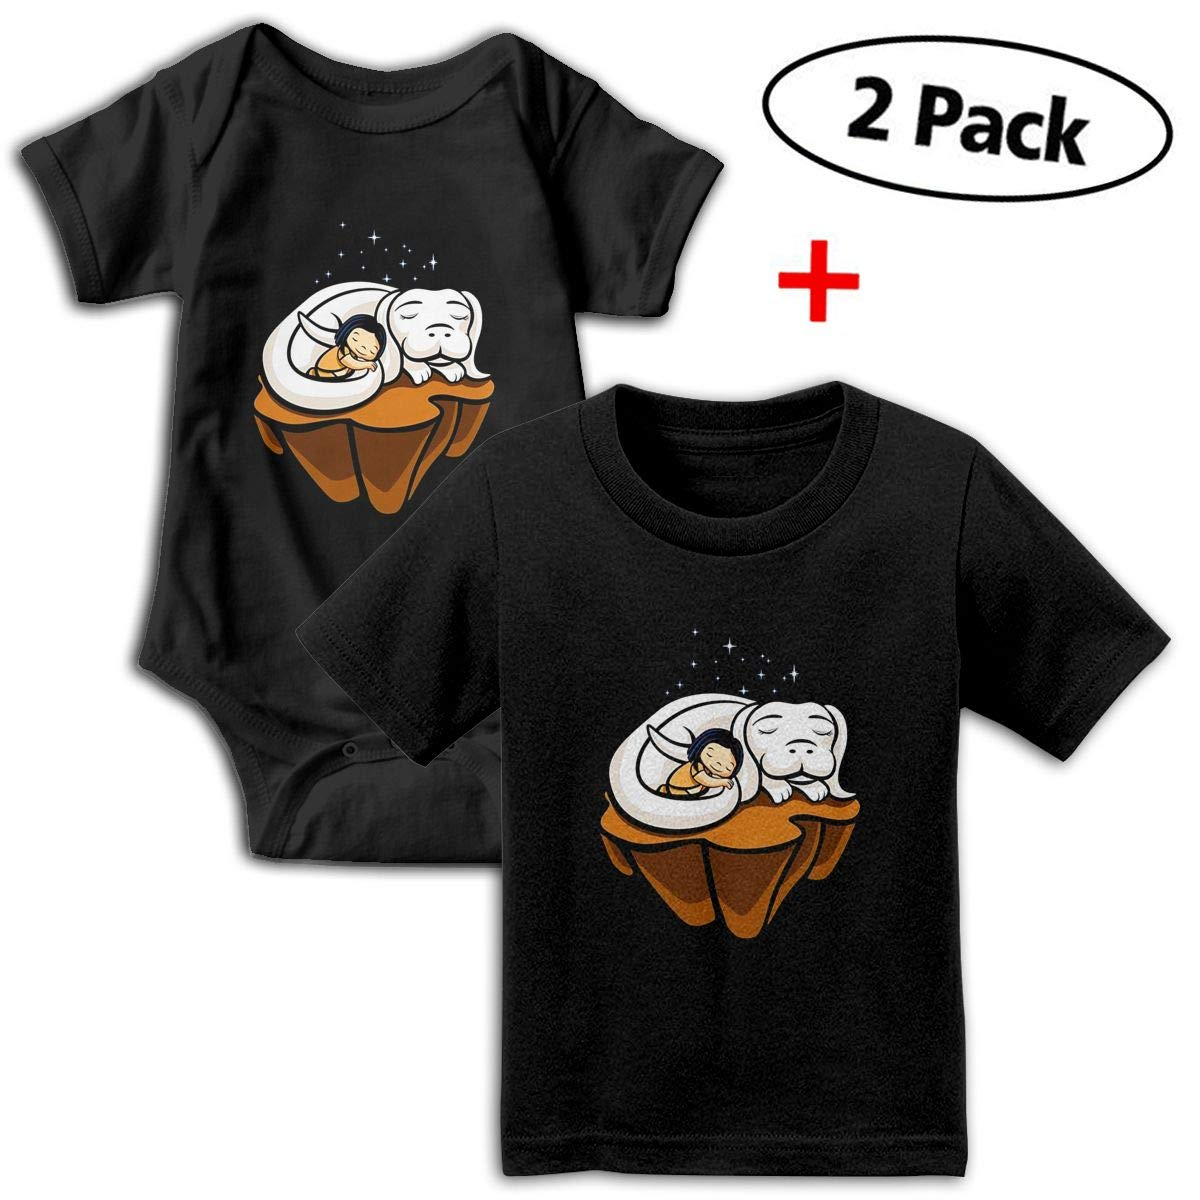 Never Ending Friendship Babys Boys /& Girls Short Sleeve Baby Climbing Clothes And Tee